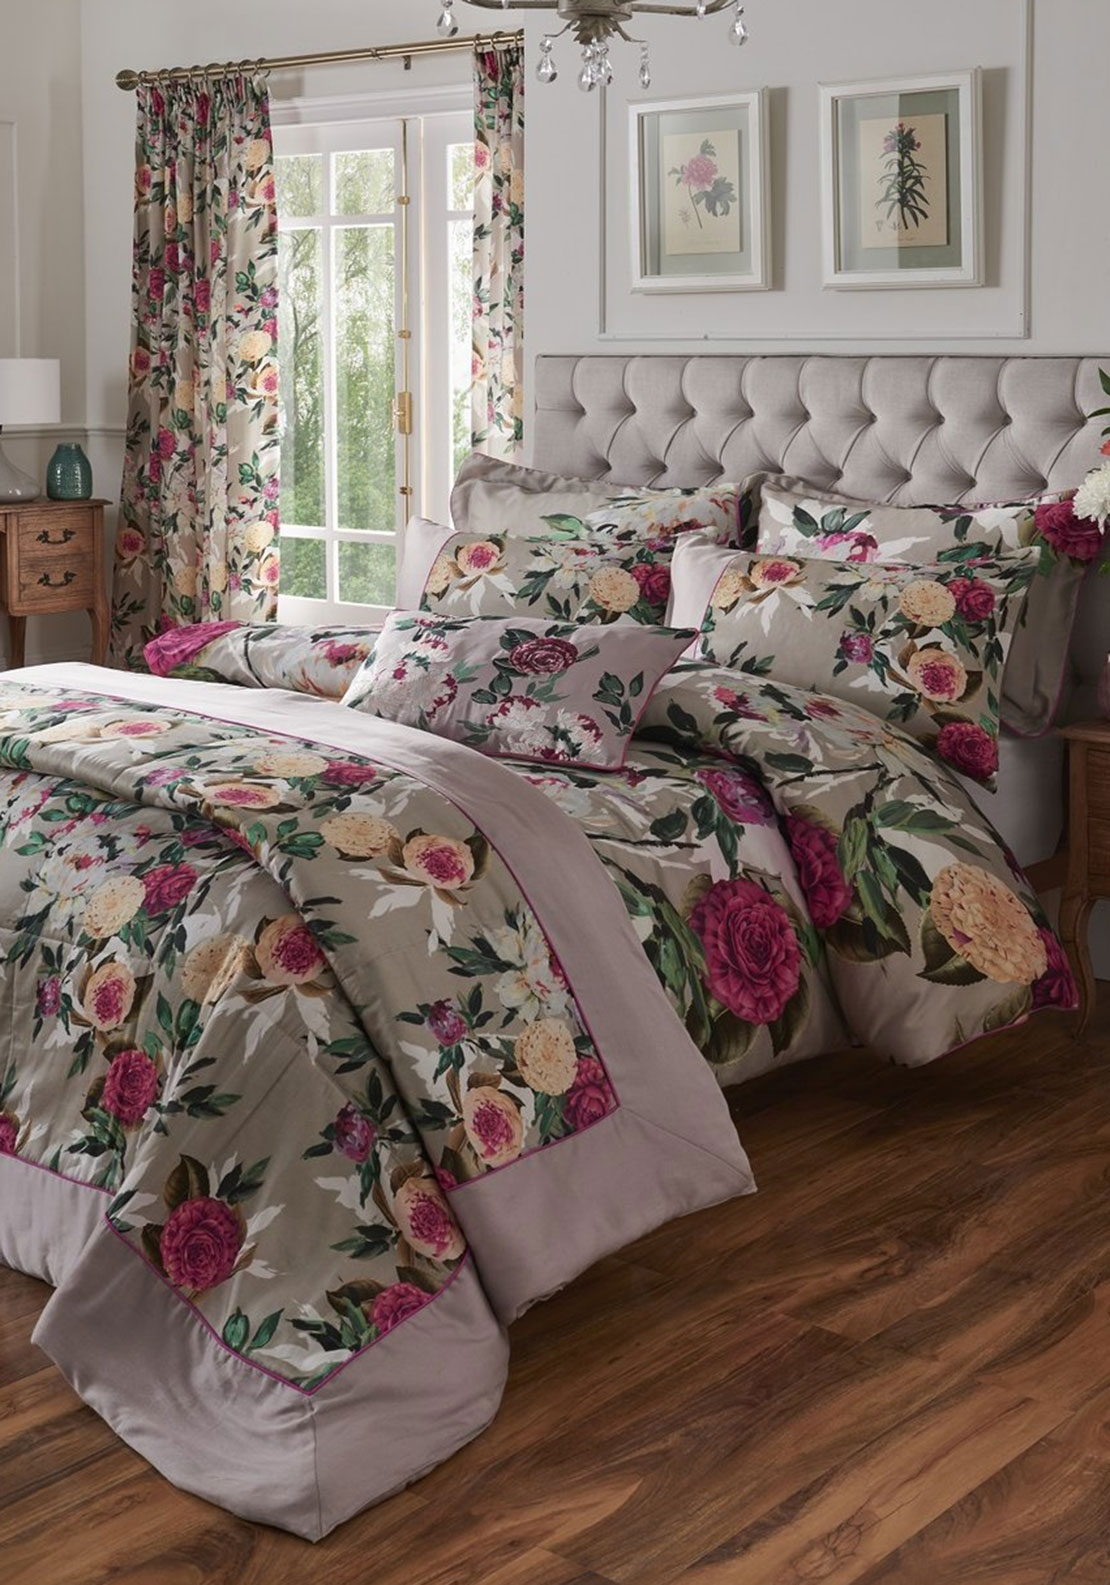 Dorma Quilt Covers Dorma Quilt Covers And Curtains Home